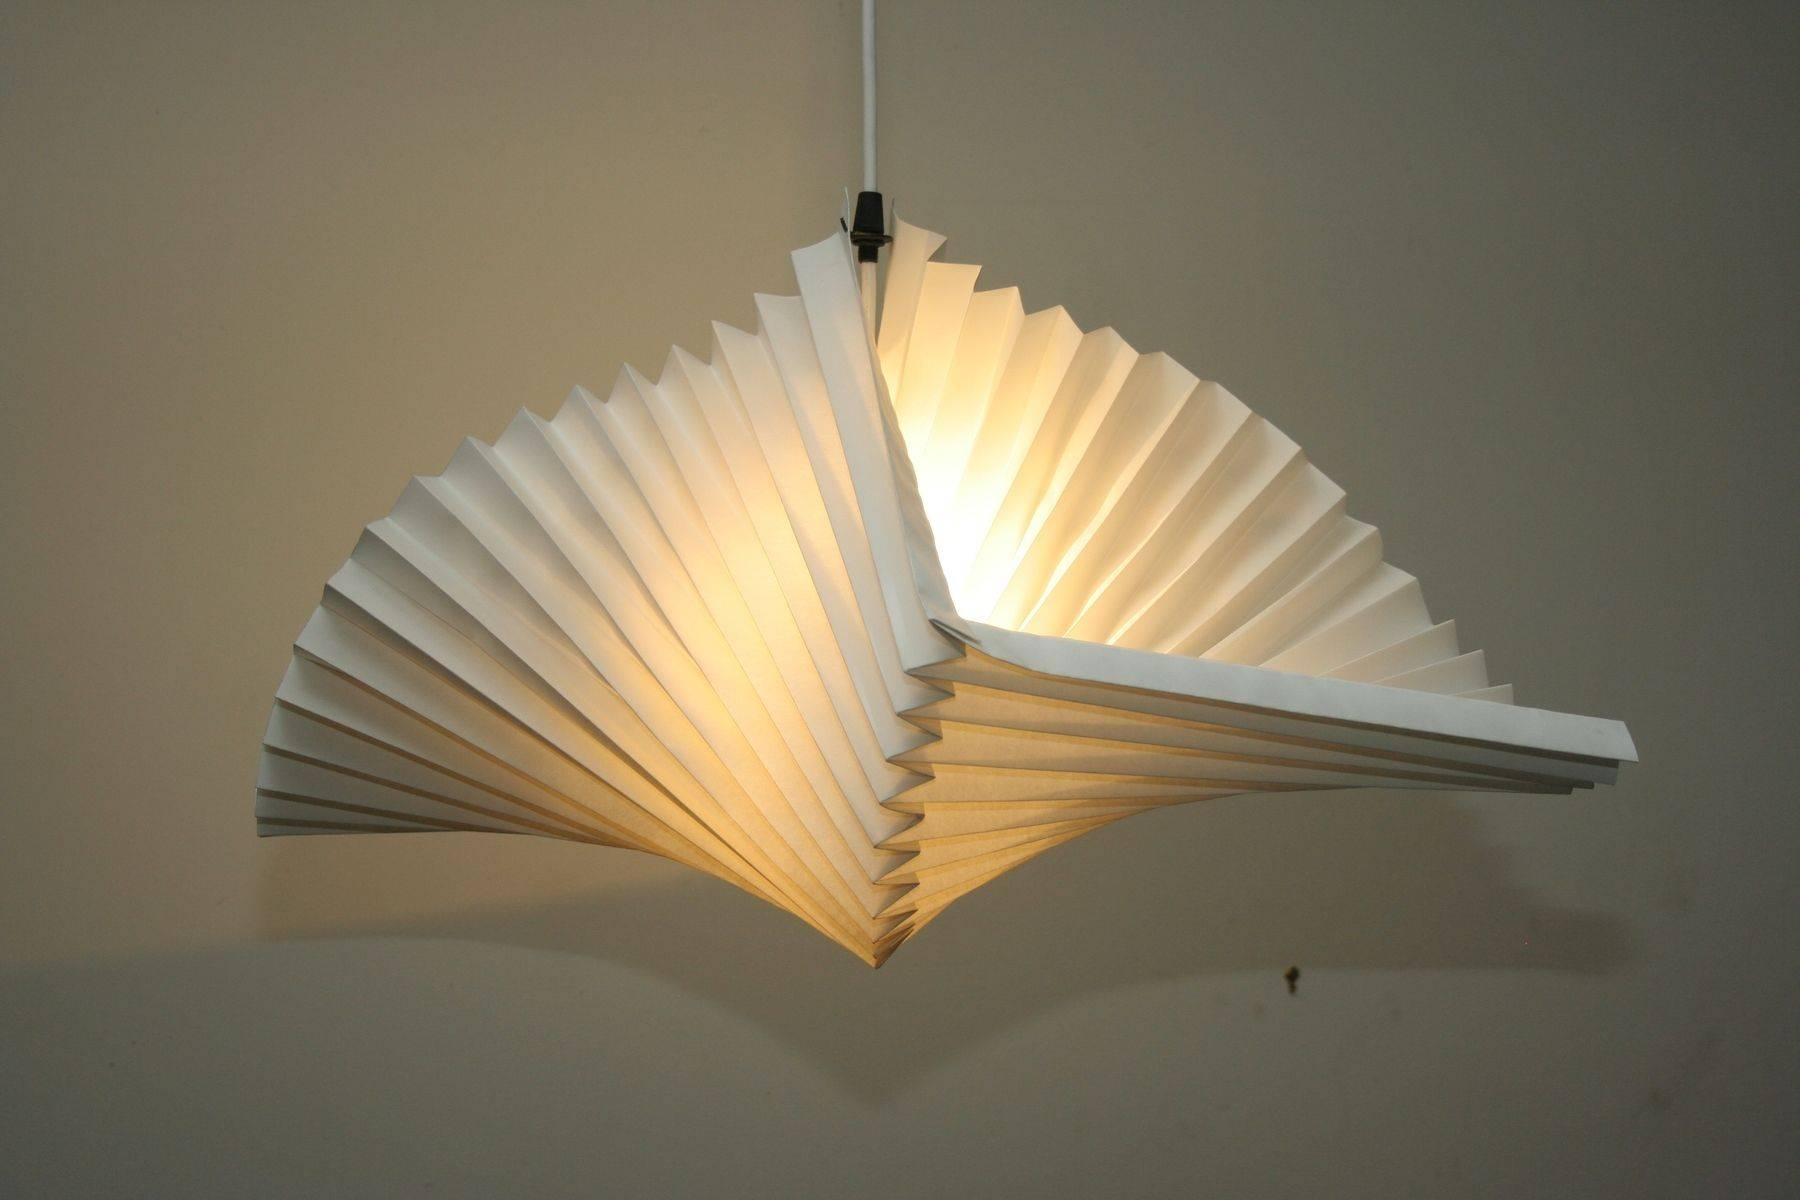 Hand Made Spiral Pleated Pendant Lamppeter Barnes | Custommade intended for Shell Light Shades Pendants (Image 5 of 15)